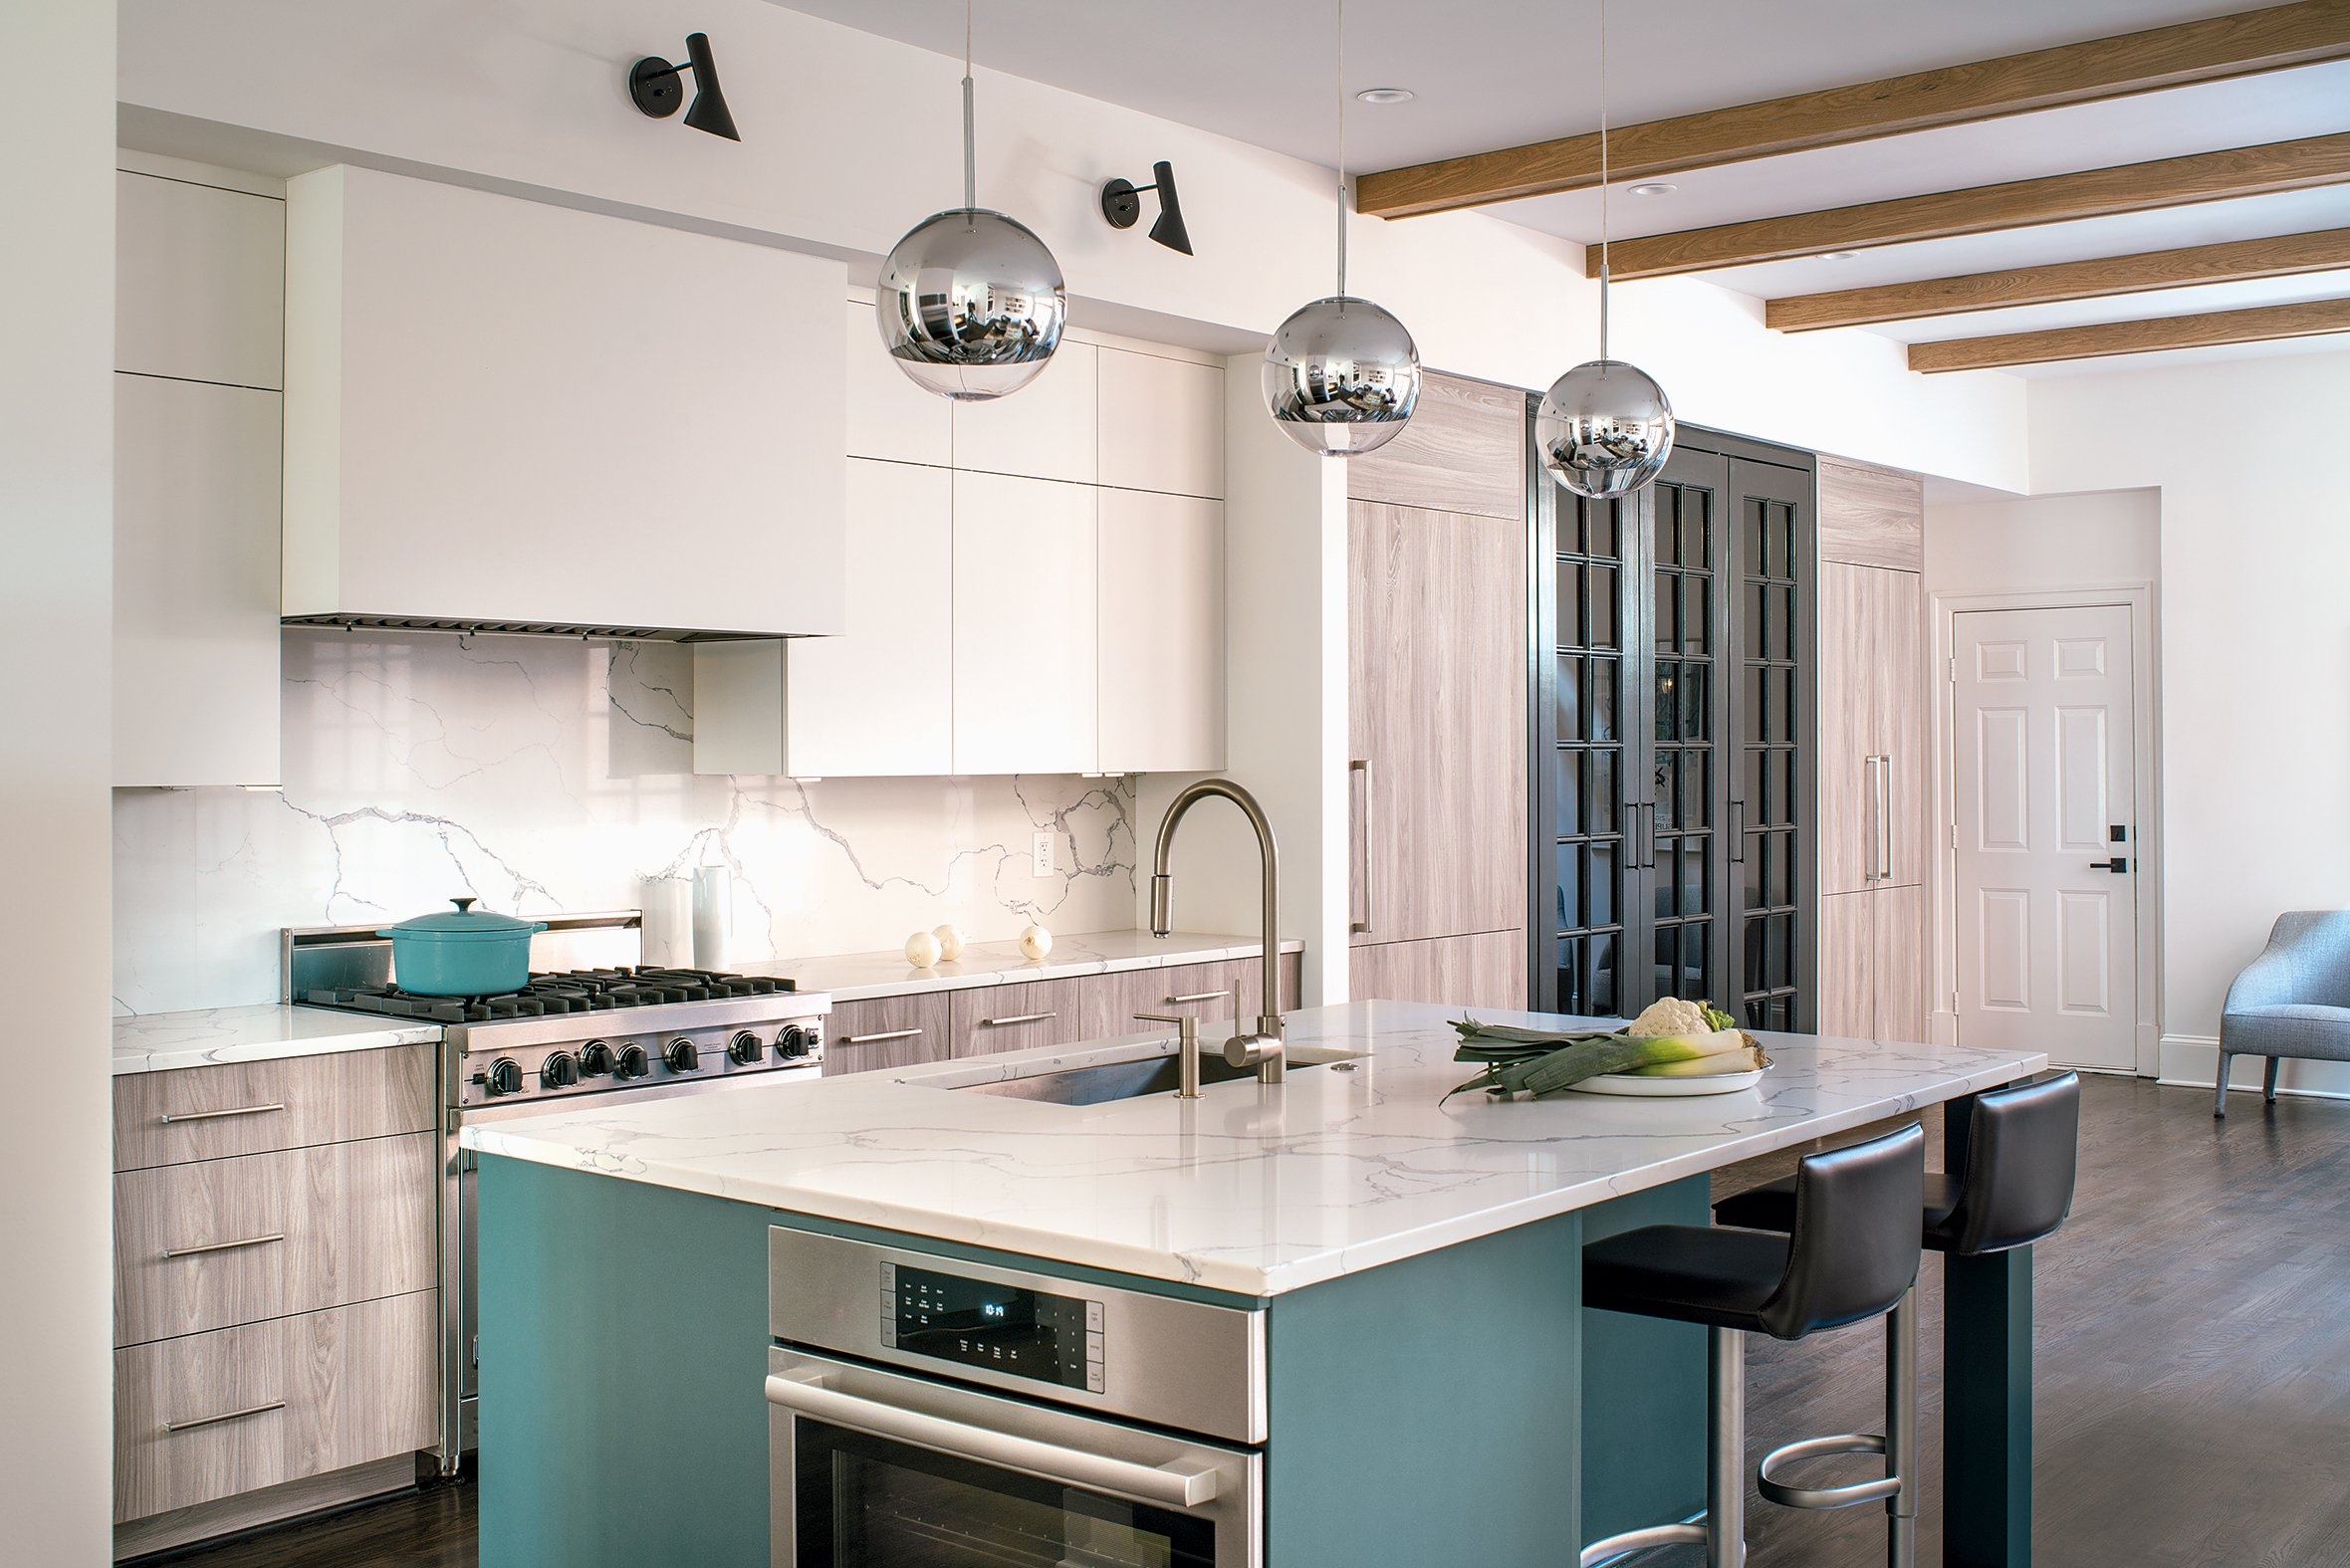 With the different light fixtures and cabinet colors, designer Sarah Kahn Turner unified the space via a single material for countertops and backsplash. Photograph by John Cole Photo.